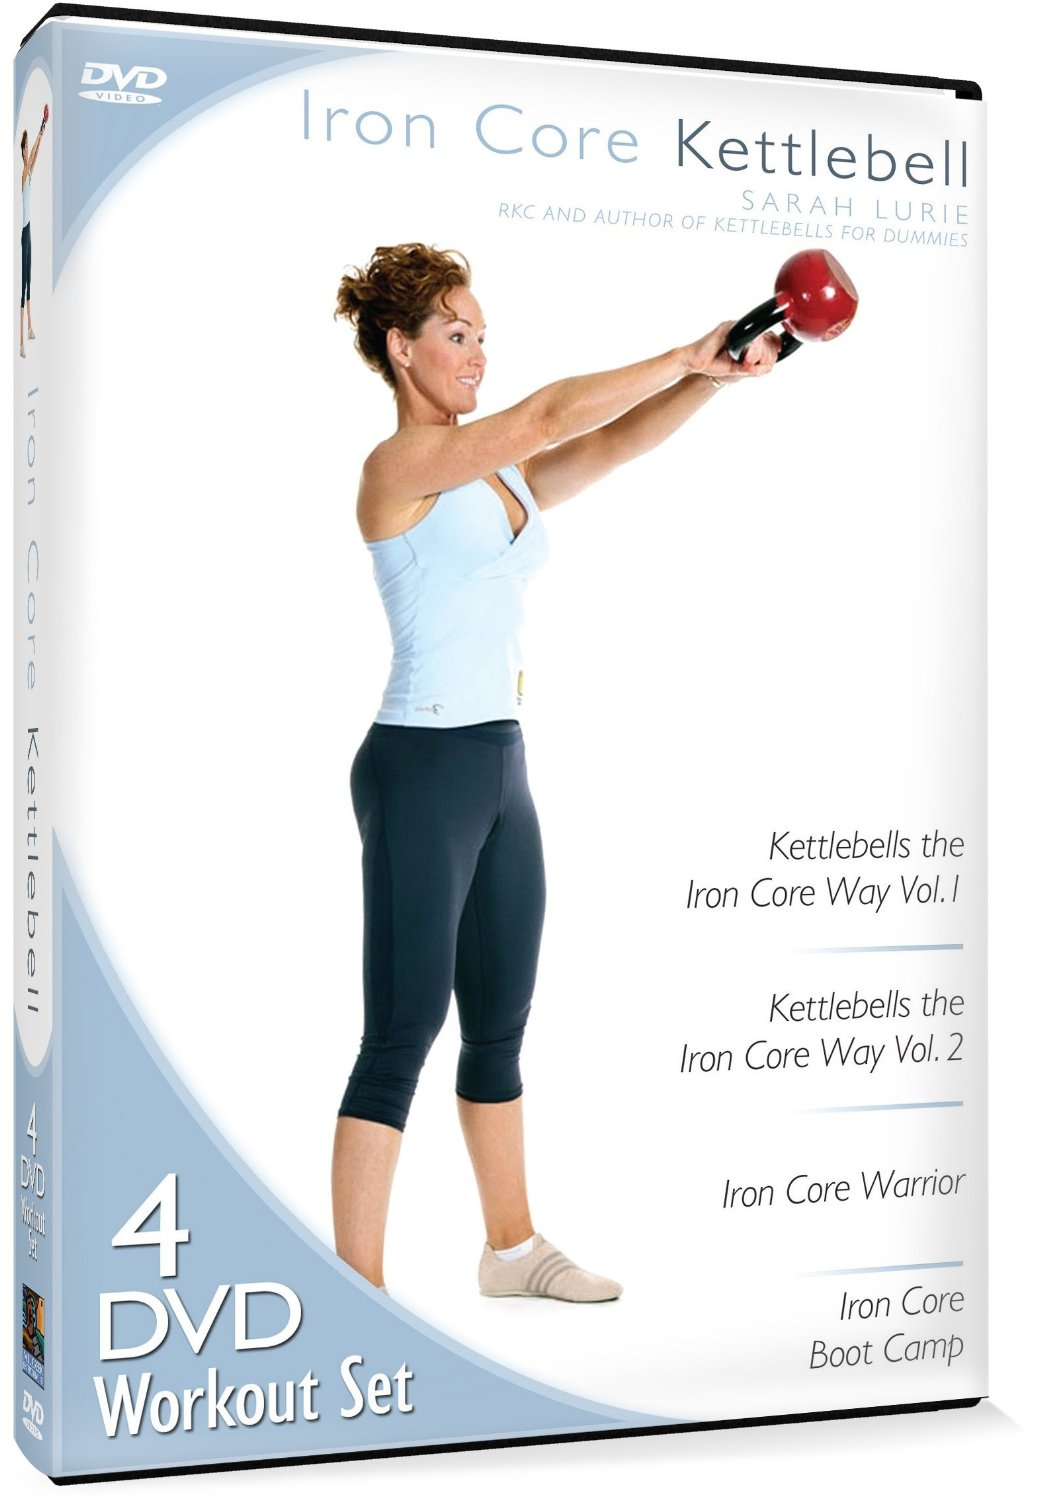 Iron Core Kettlebell Is A Neat Collection Of Sarah Lurie Workouts I Got On Amazon For Great Price It Actually 4 Separate Workout DVDs That